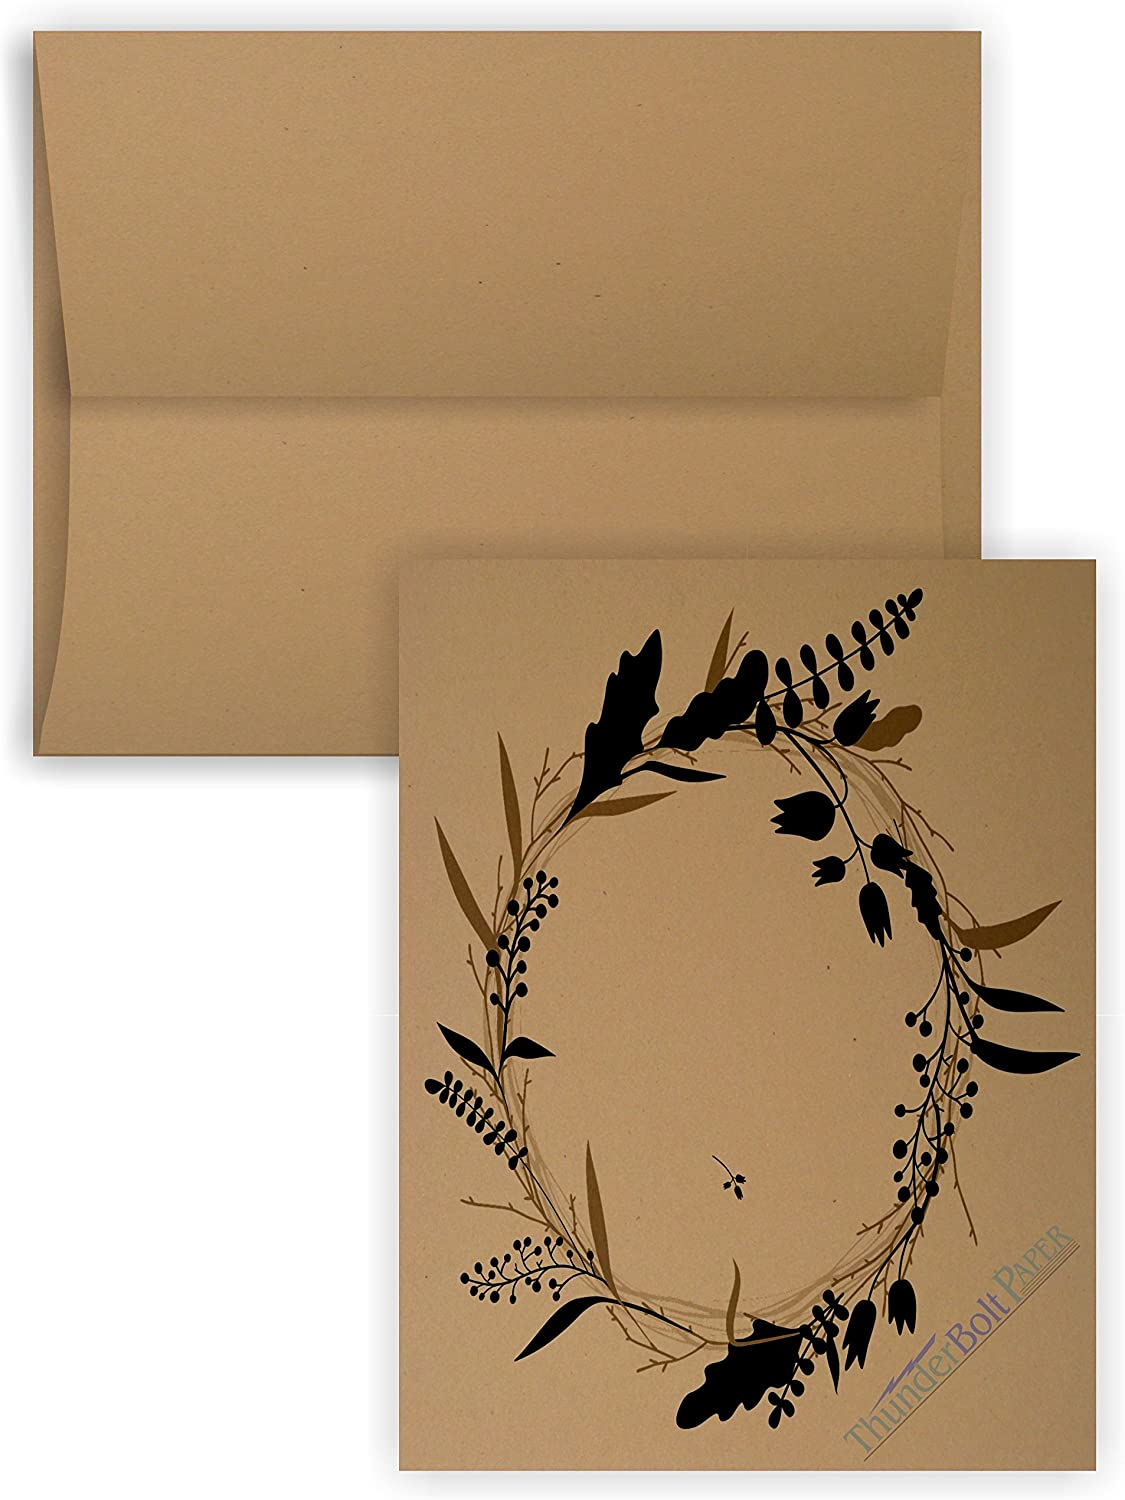 5X7 Cut Size Cards with A-7 Envelopes - Brown Kraft Fiber - 50 Sets - Matching Pack - Invitations, Greeting, Thank Yous, Notes, Holidays, Weddings, Birthdays, Announcements - 80# Cardstock : Office Products